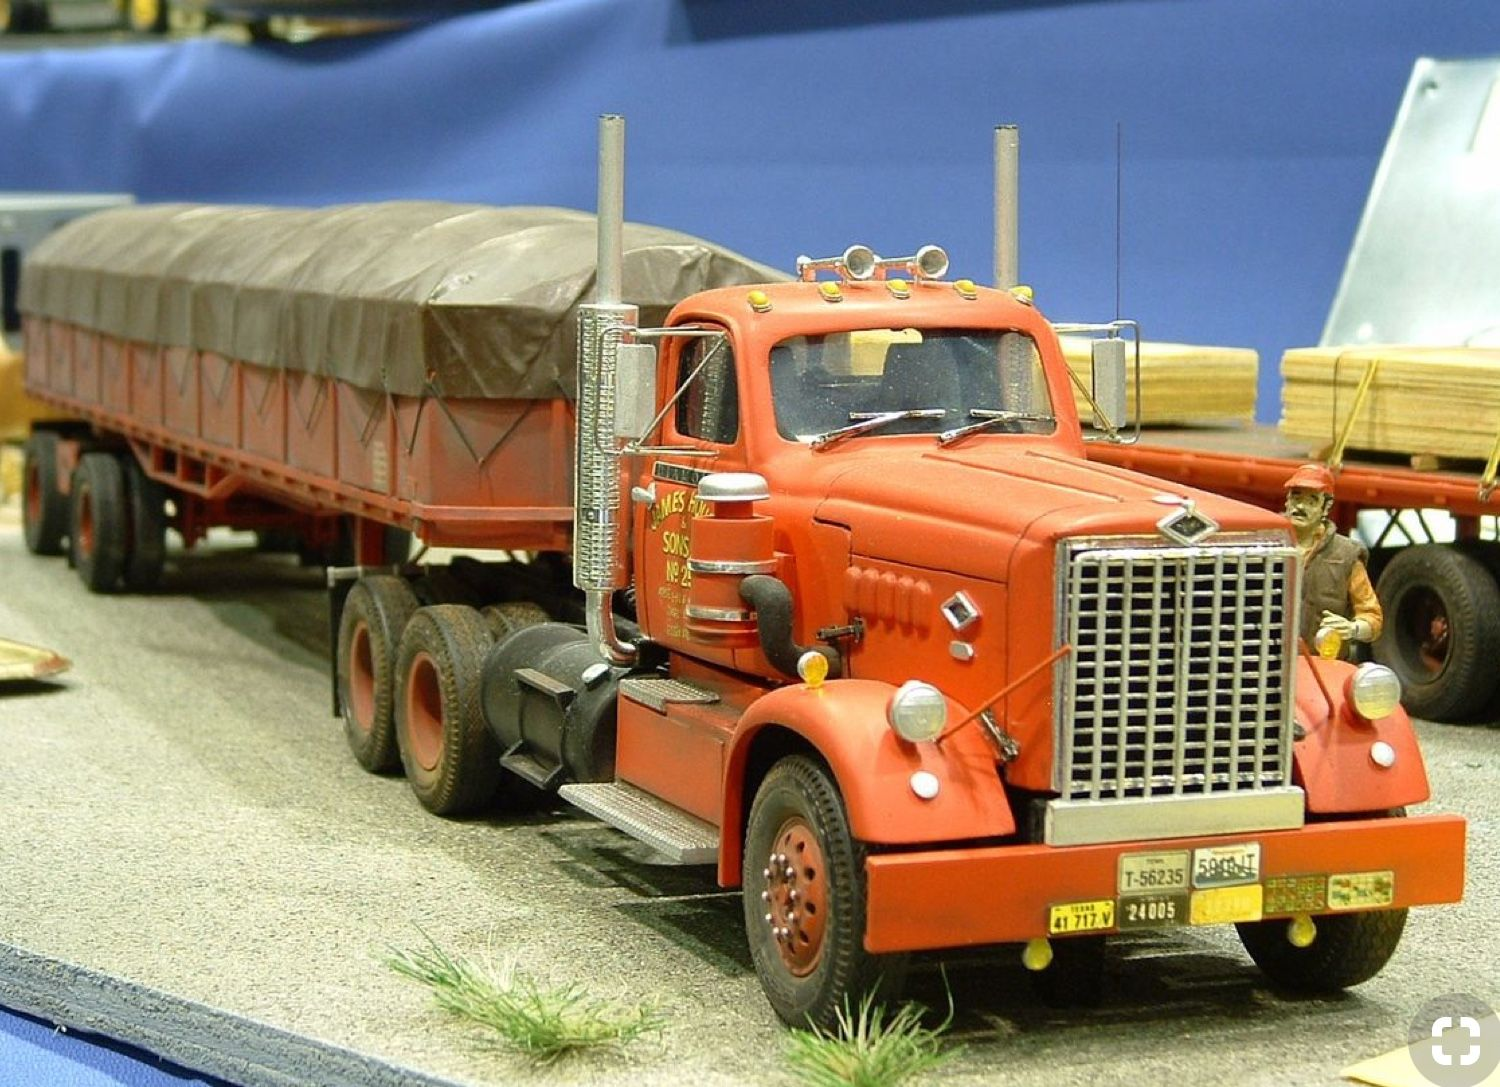 Pin by Tim on Model trucks | Model truck kits, Plastic model